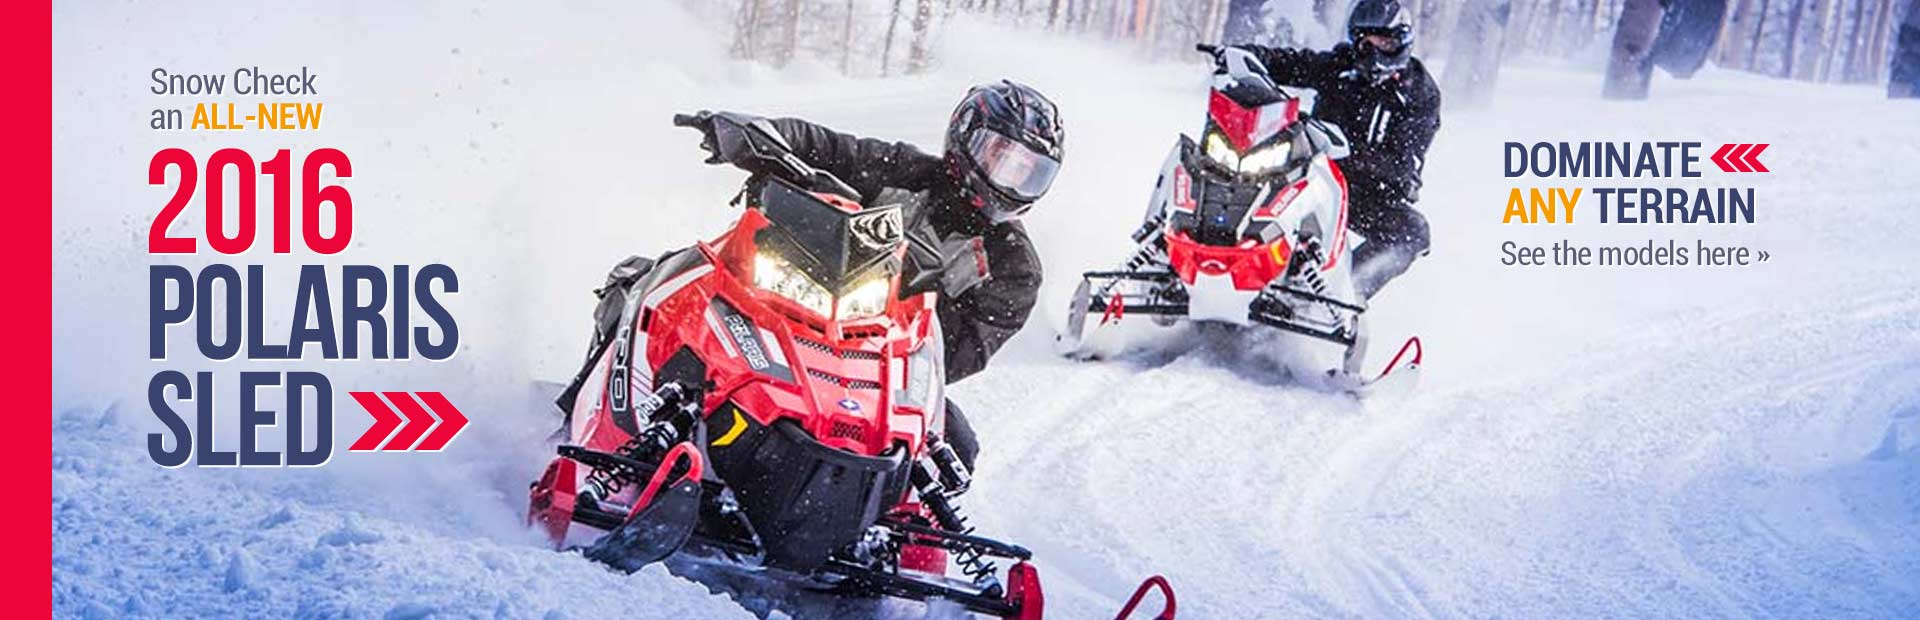 Polaris Snow Check: Click here to view the 2016 models.